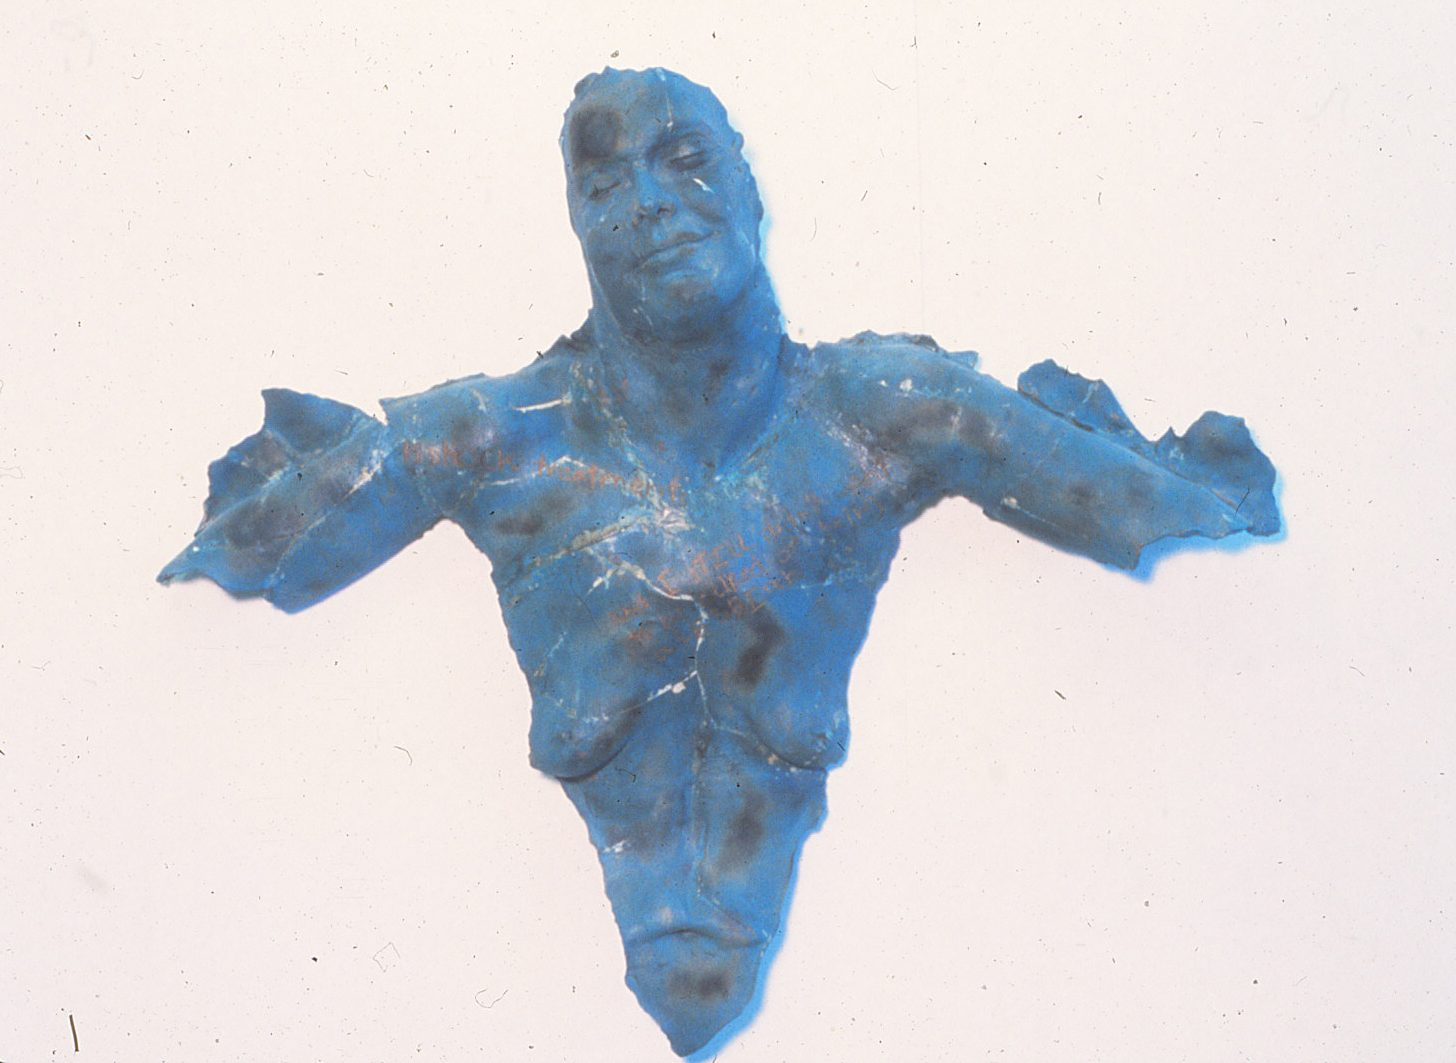 photo of blue naked woman's torso, woman is smiling or enduring